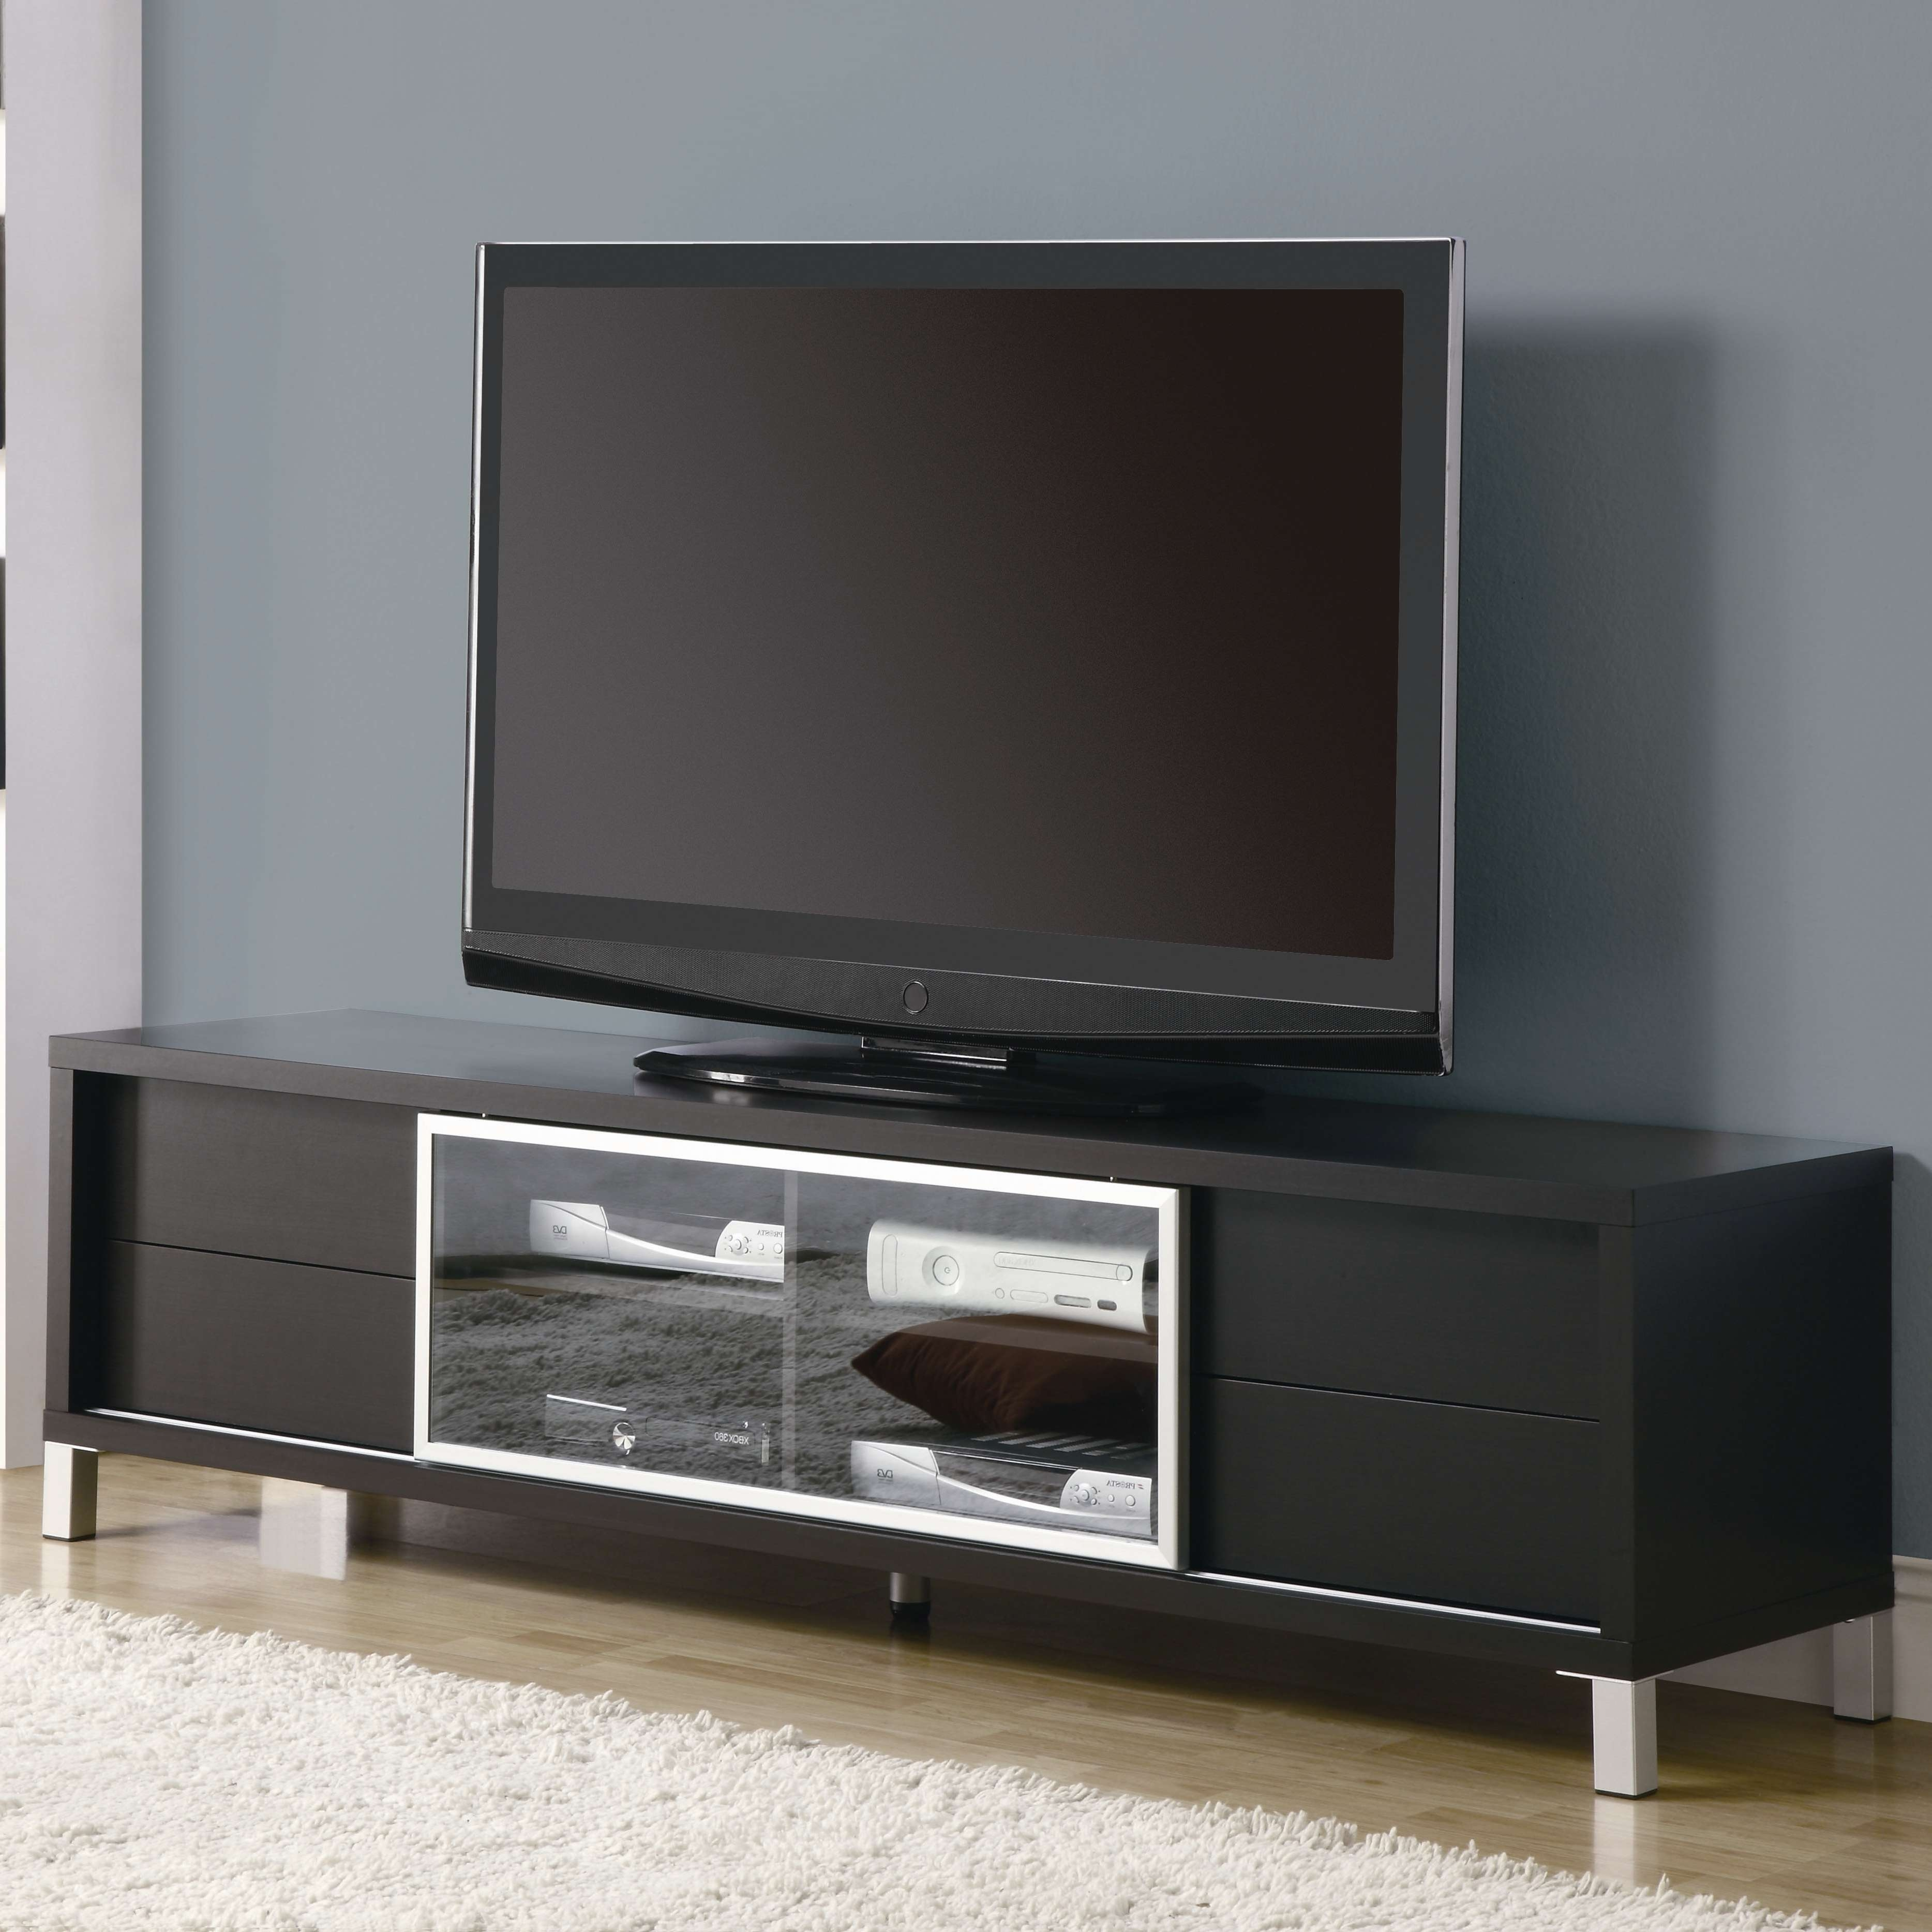 Furnitures Picture Of Hidden Tv Stand All Can Download Guide And With Regard To All Modern Tv Stands (View 16 of 20)